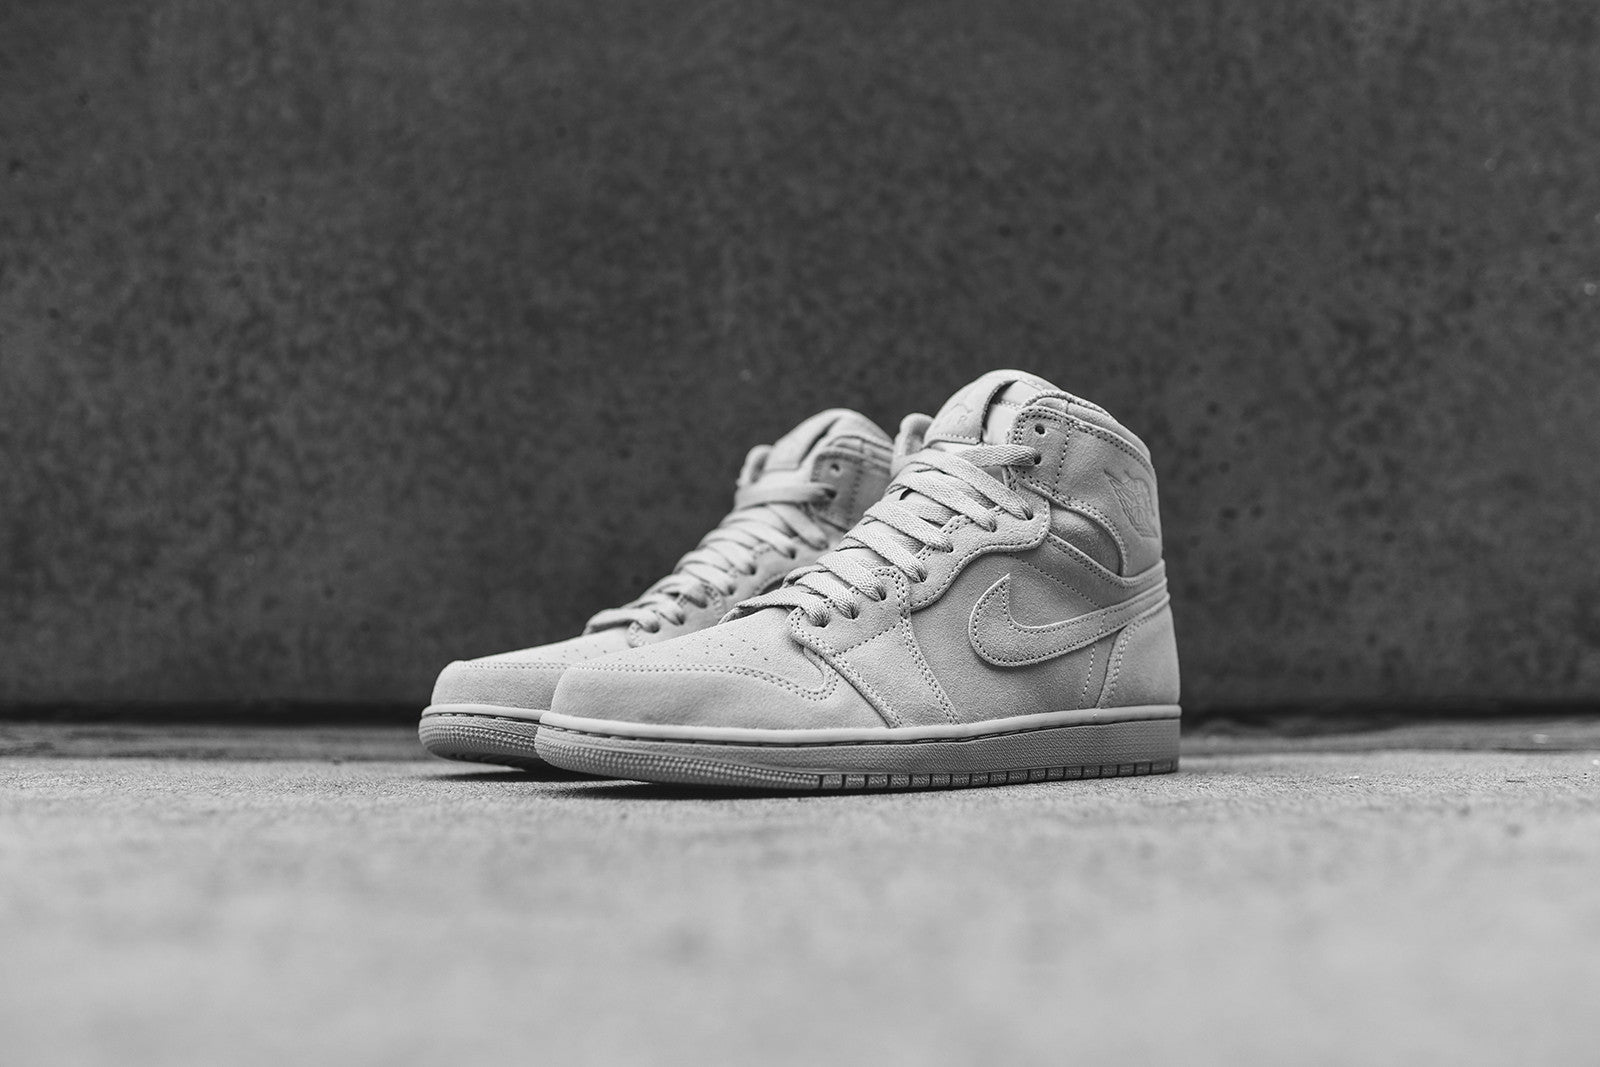 eab92c141489 1  2  3. Jordan Brand releases the Air Jordan 1 Retro High silhouette  executed in a Wolf Grey color scheme.